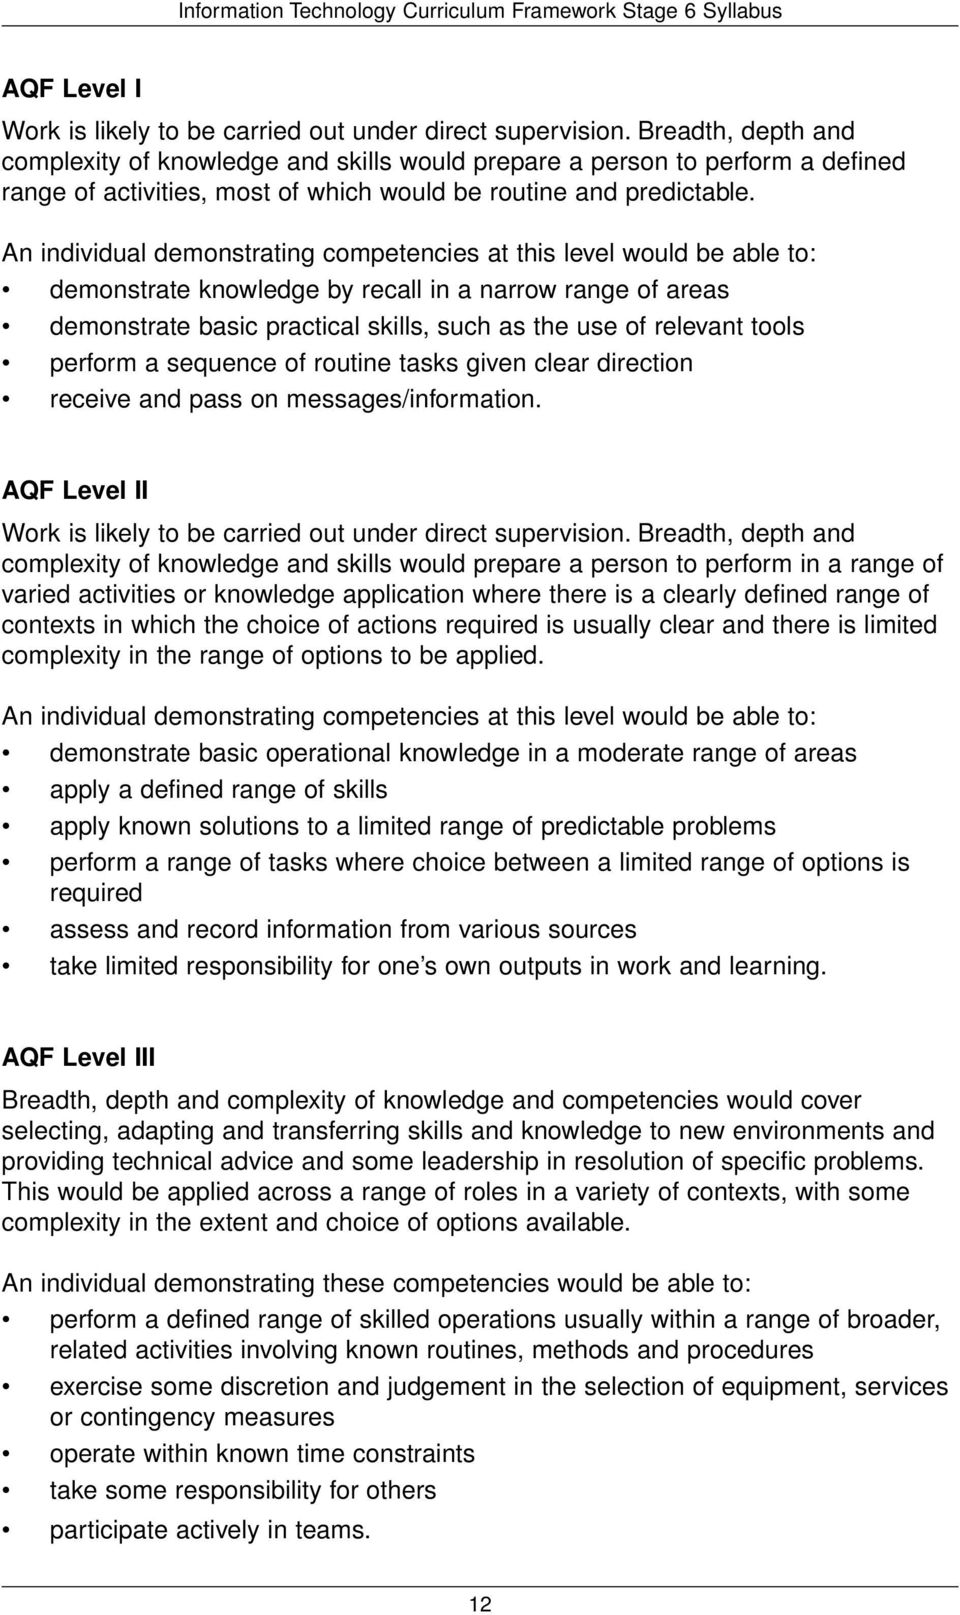 An individual demonstrating competencies at this level would be able to: demonstrate knowledge by recall in a narrow range of areas demonstrate basic practical skills, such as the use of relevant